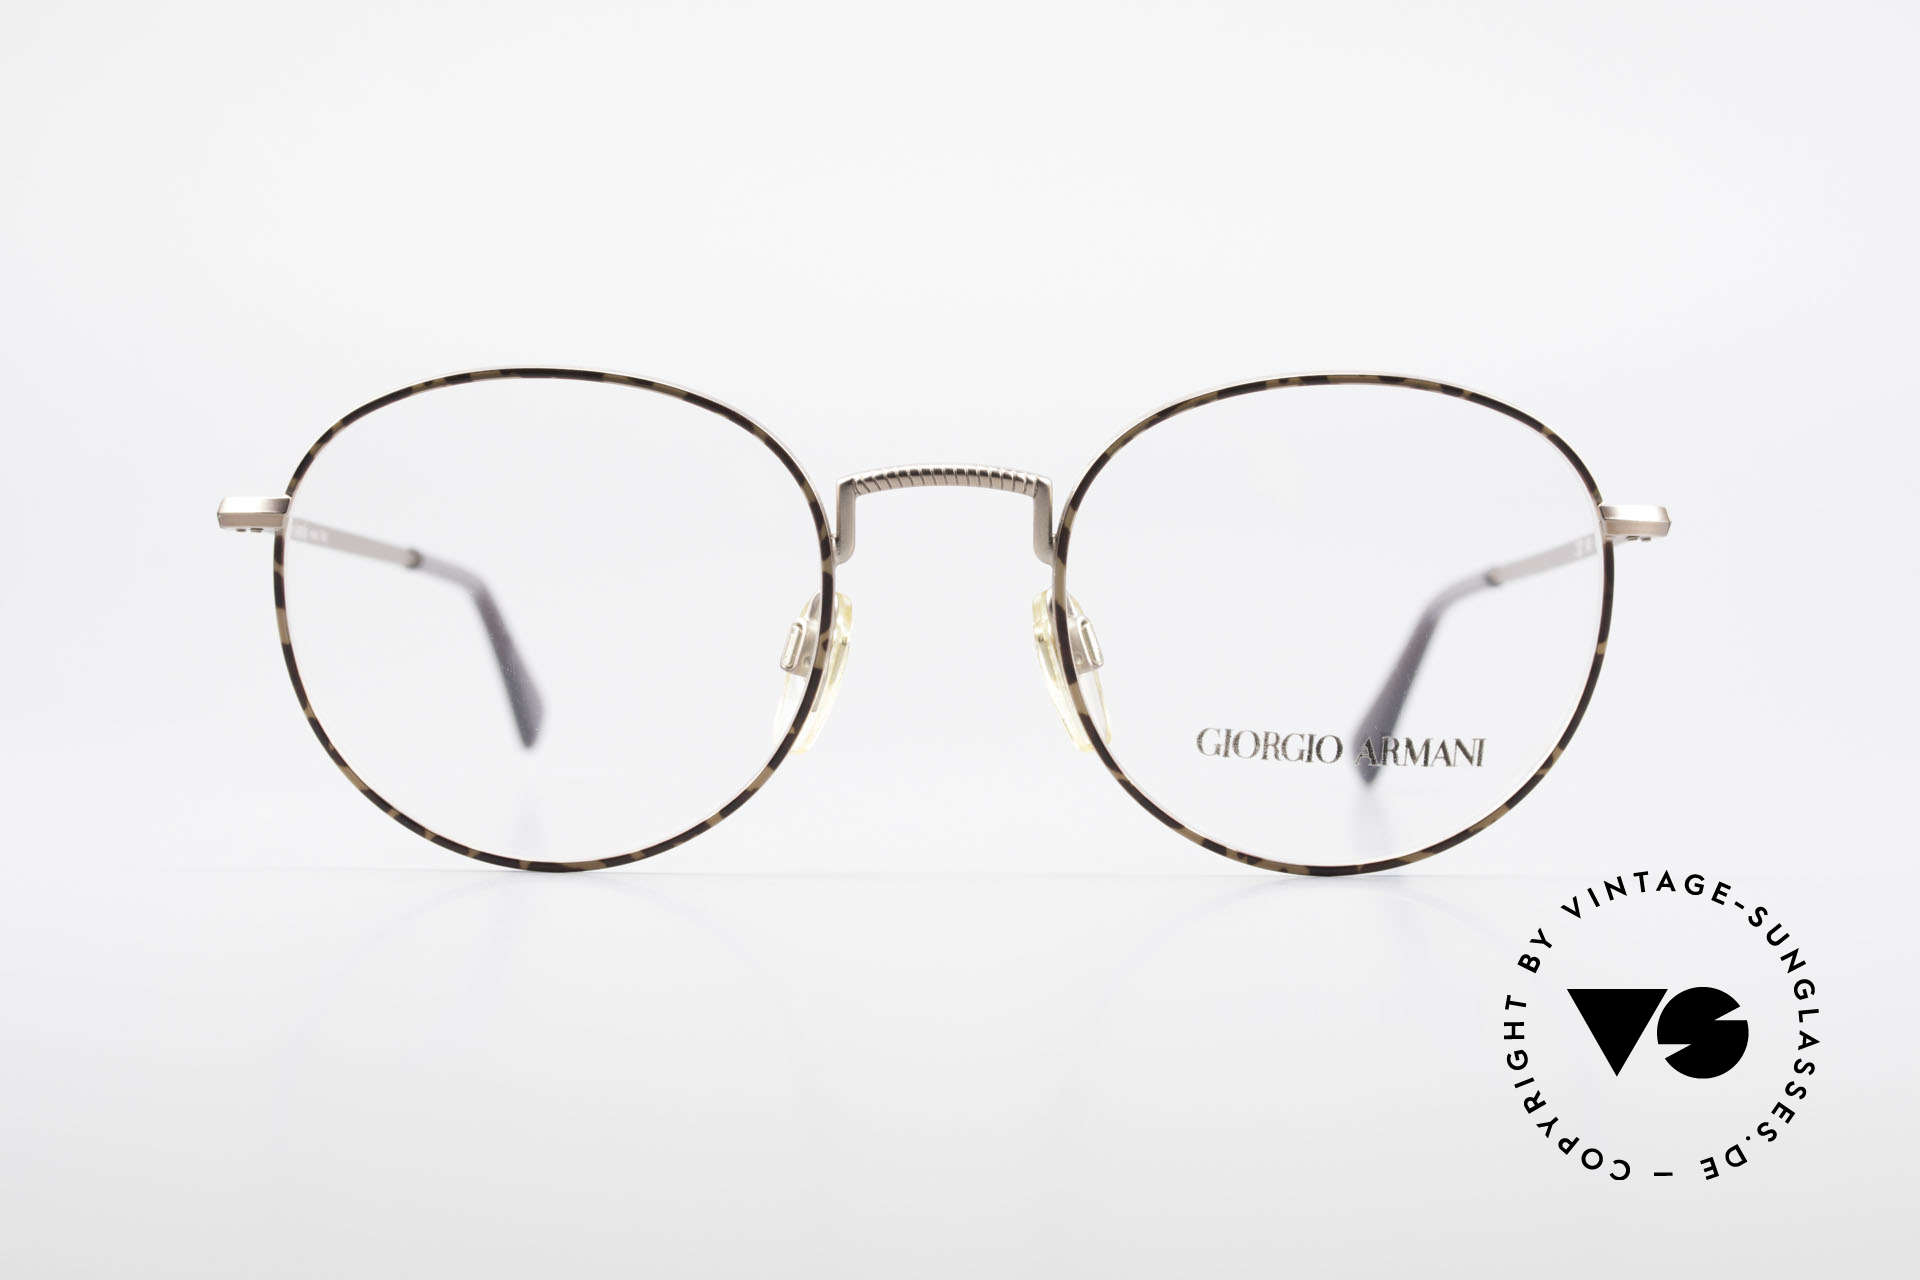 Giorgio Armani 231 80's Panto Frame No Retro, a timeless 1980's model in tangible premium quality, Made for Men